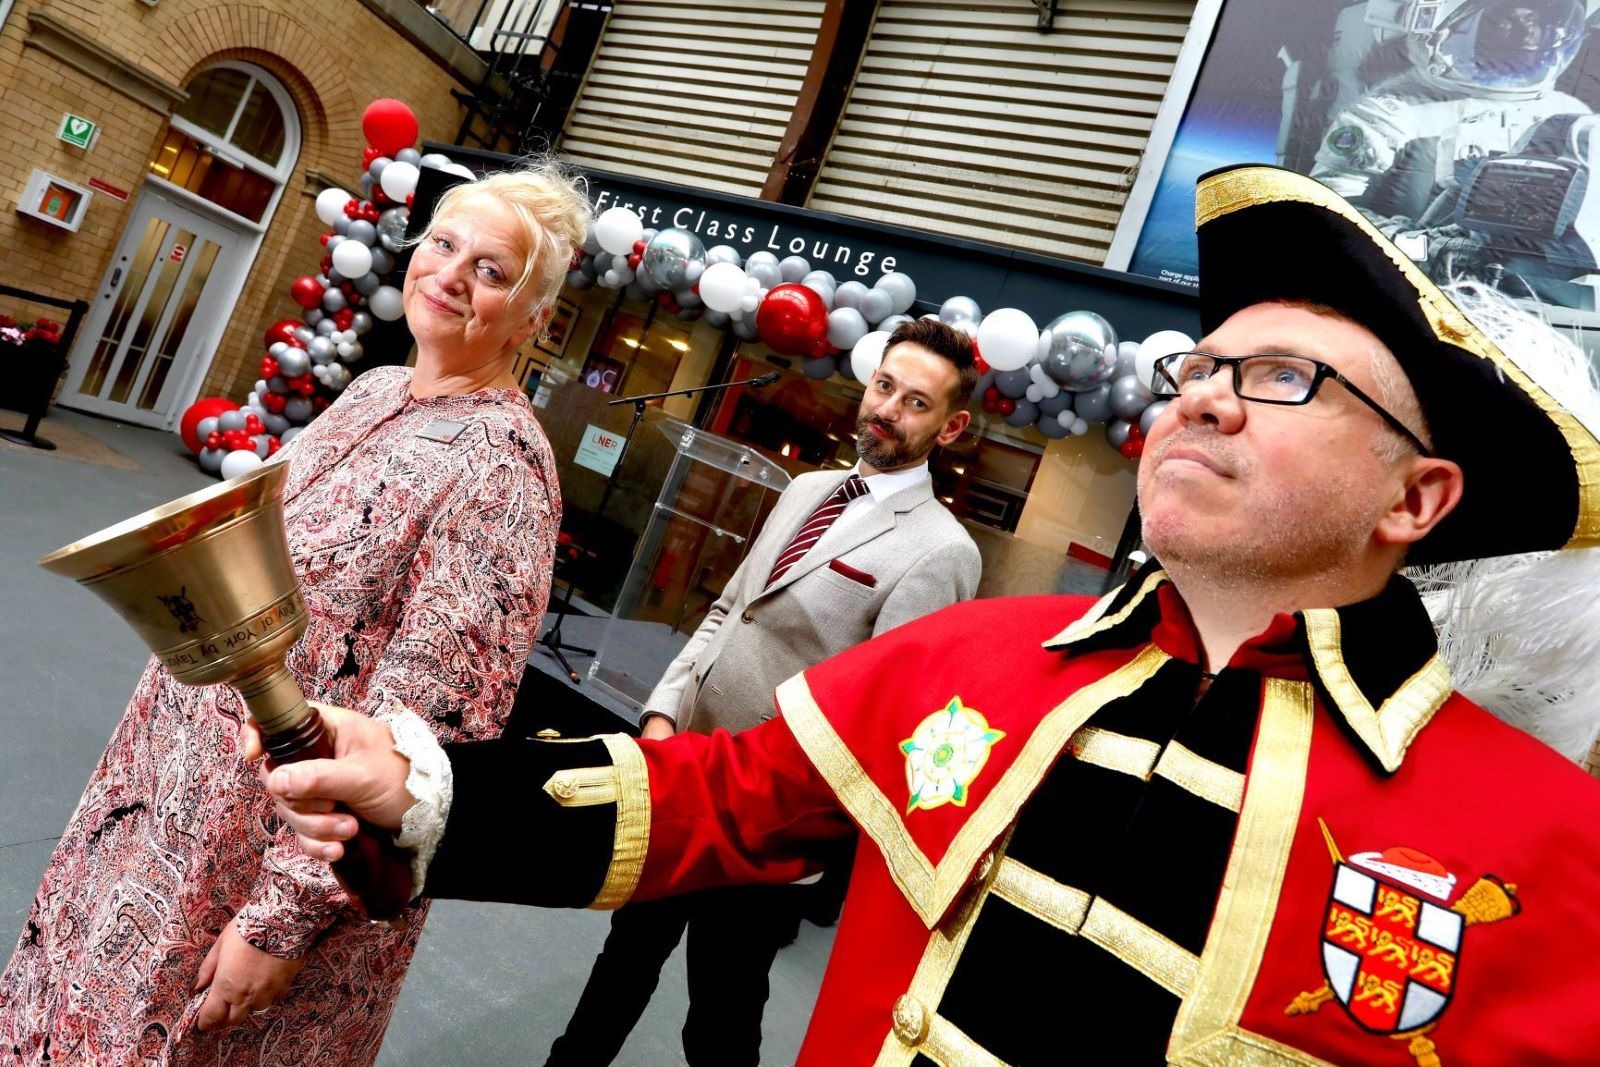 York Station Gets First Class Treatment With New Luxury Lounge